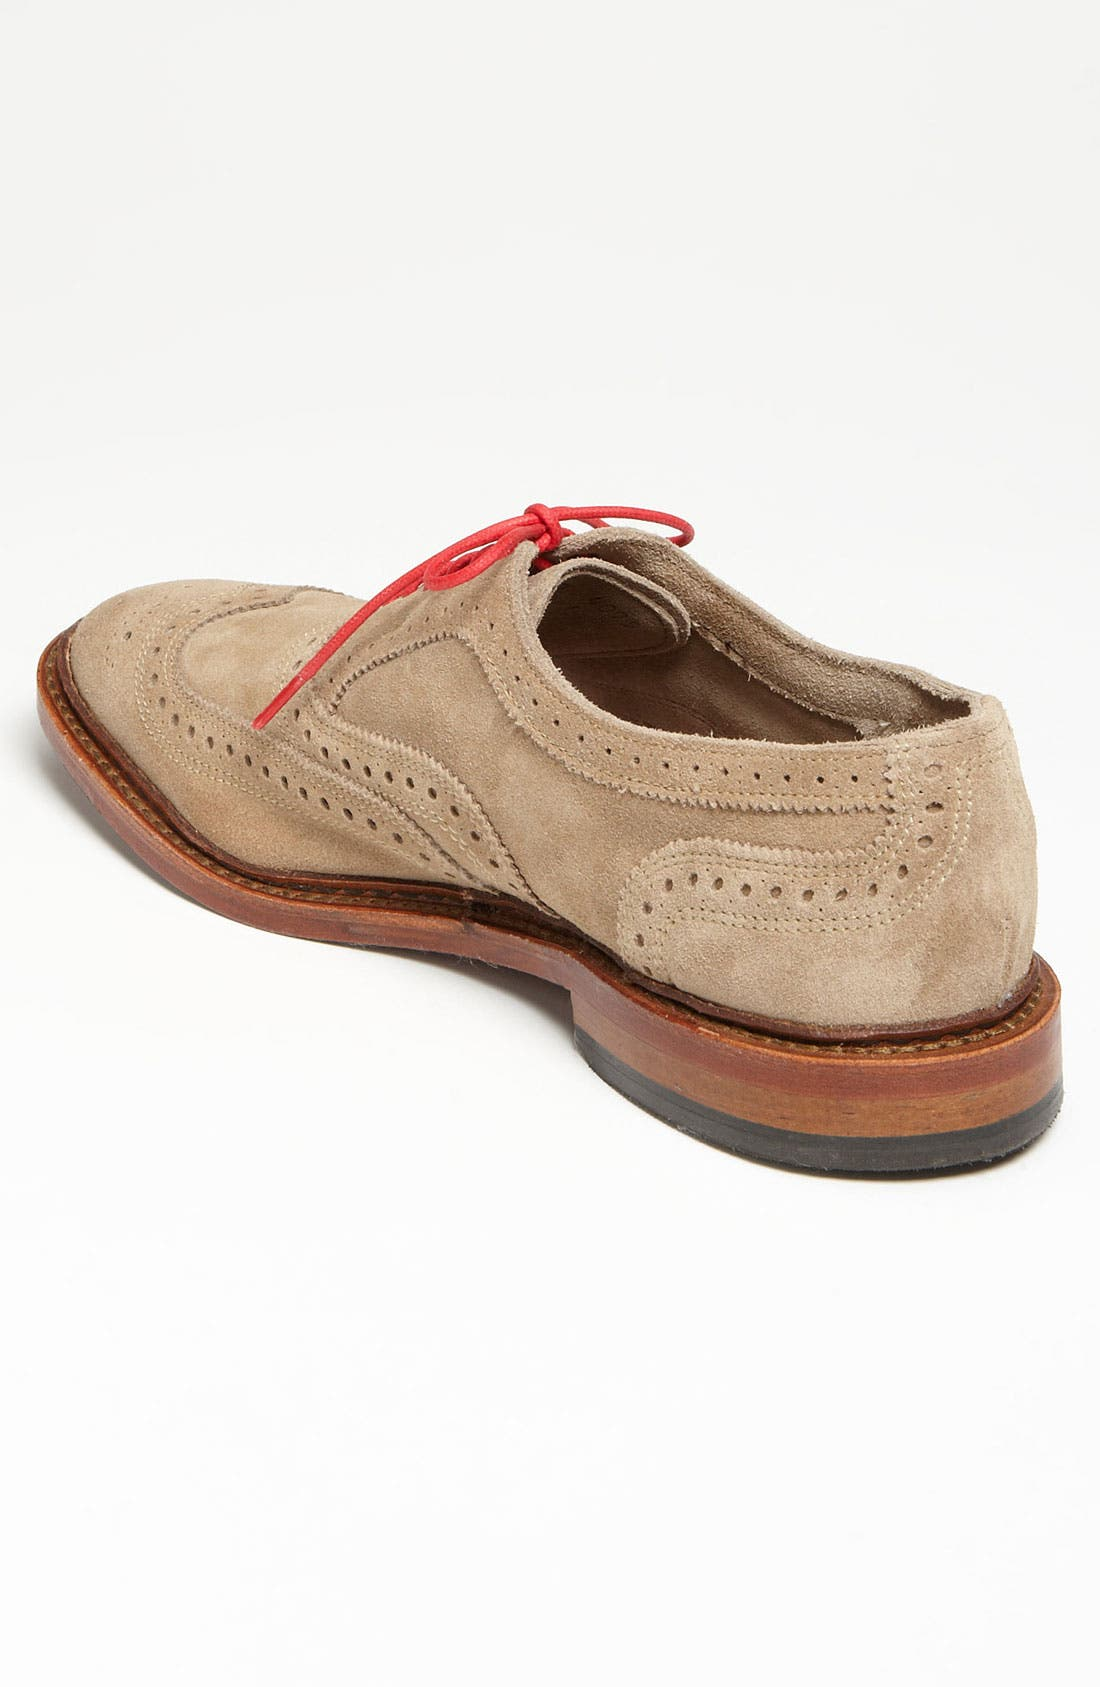 Alternate Image 2  - Allen Edmonds 'Neumok' Oxford (Men)